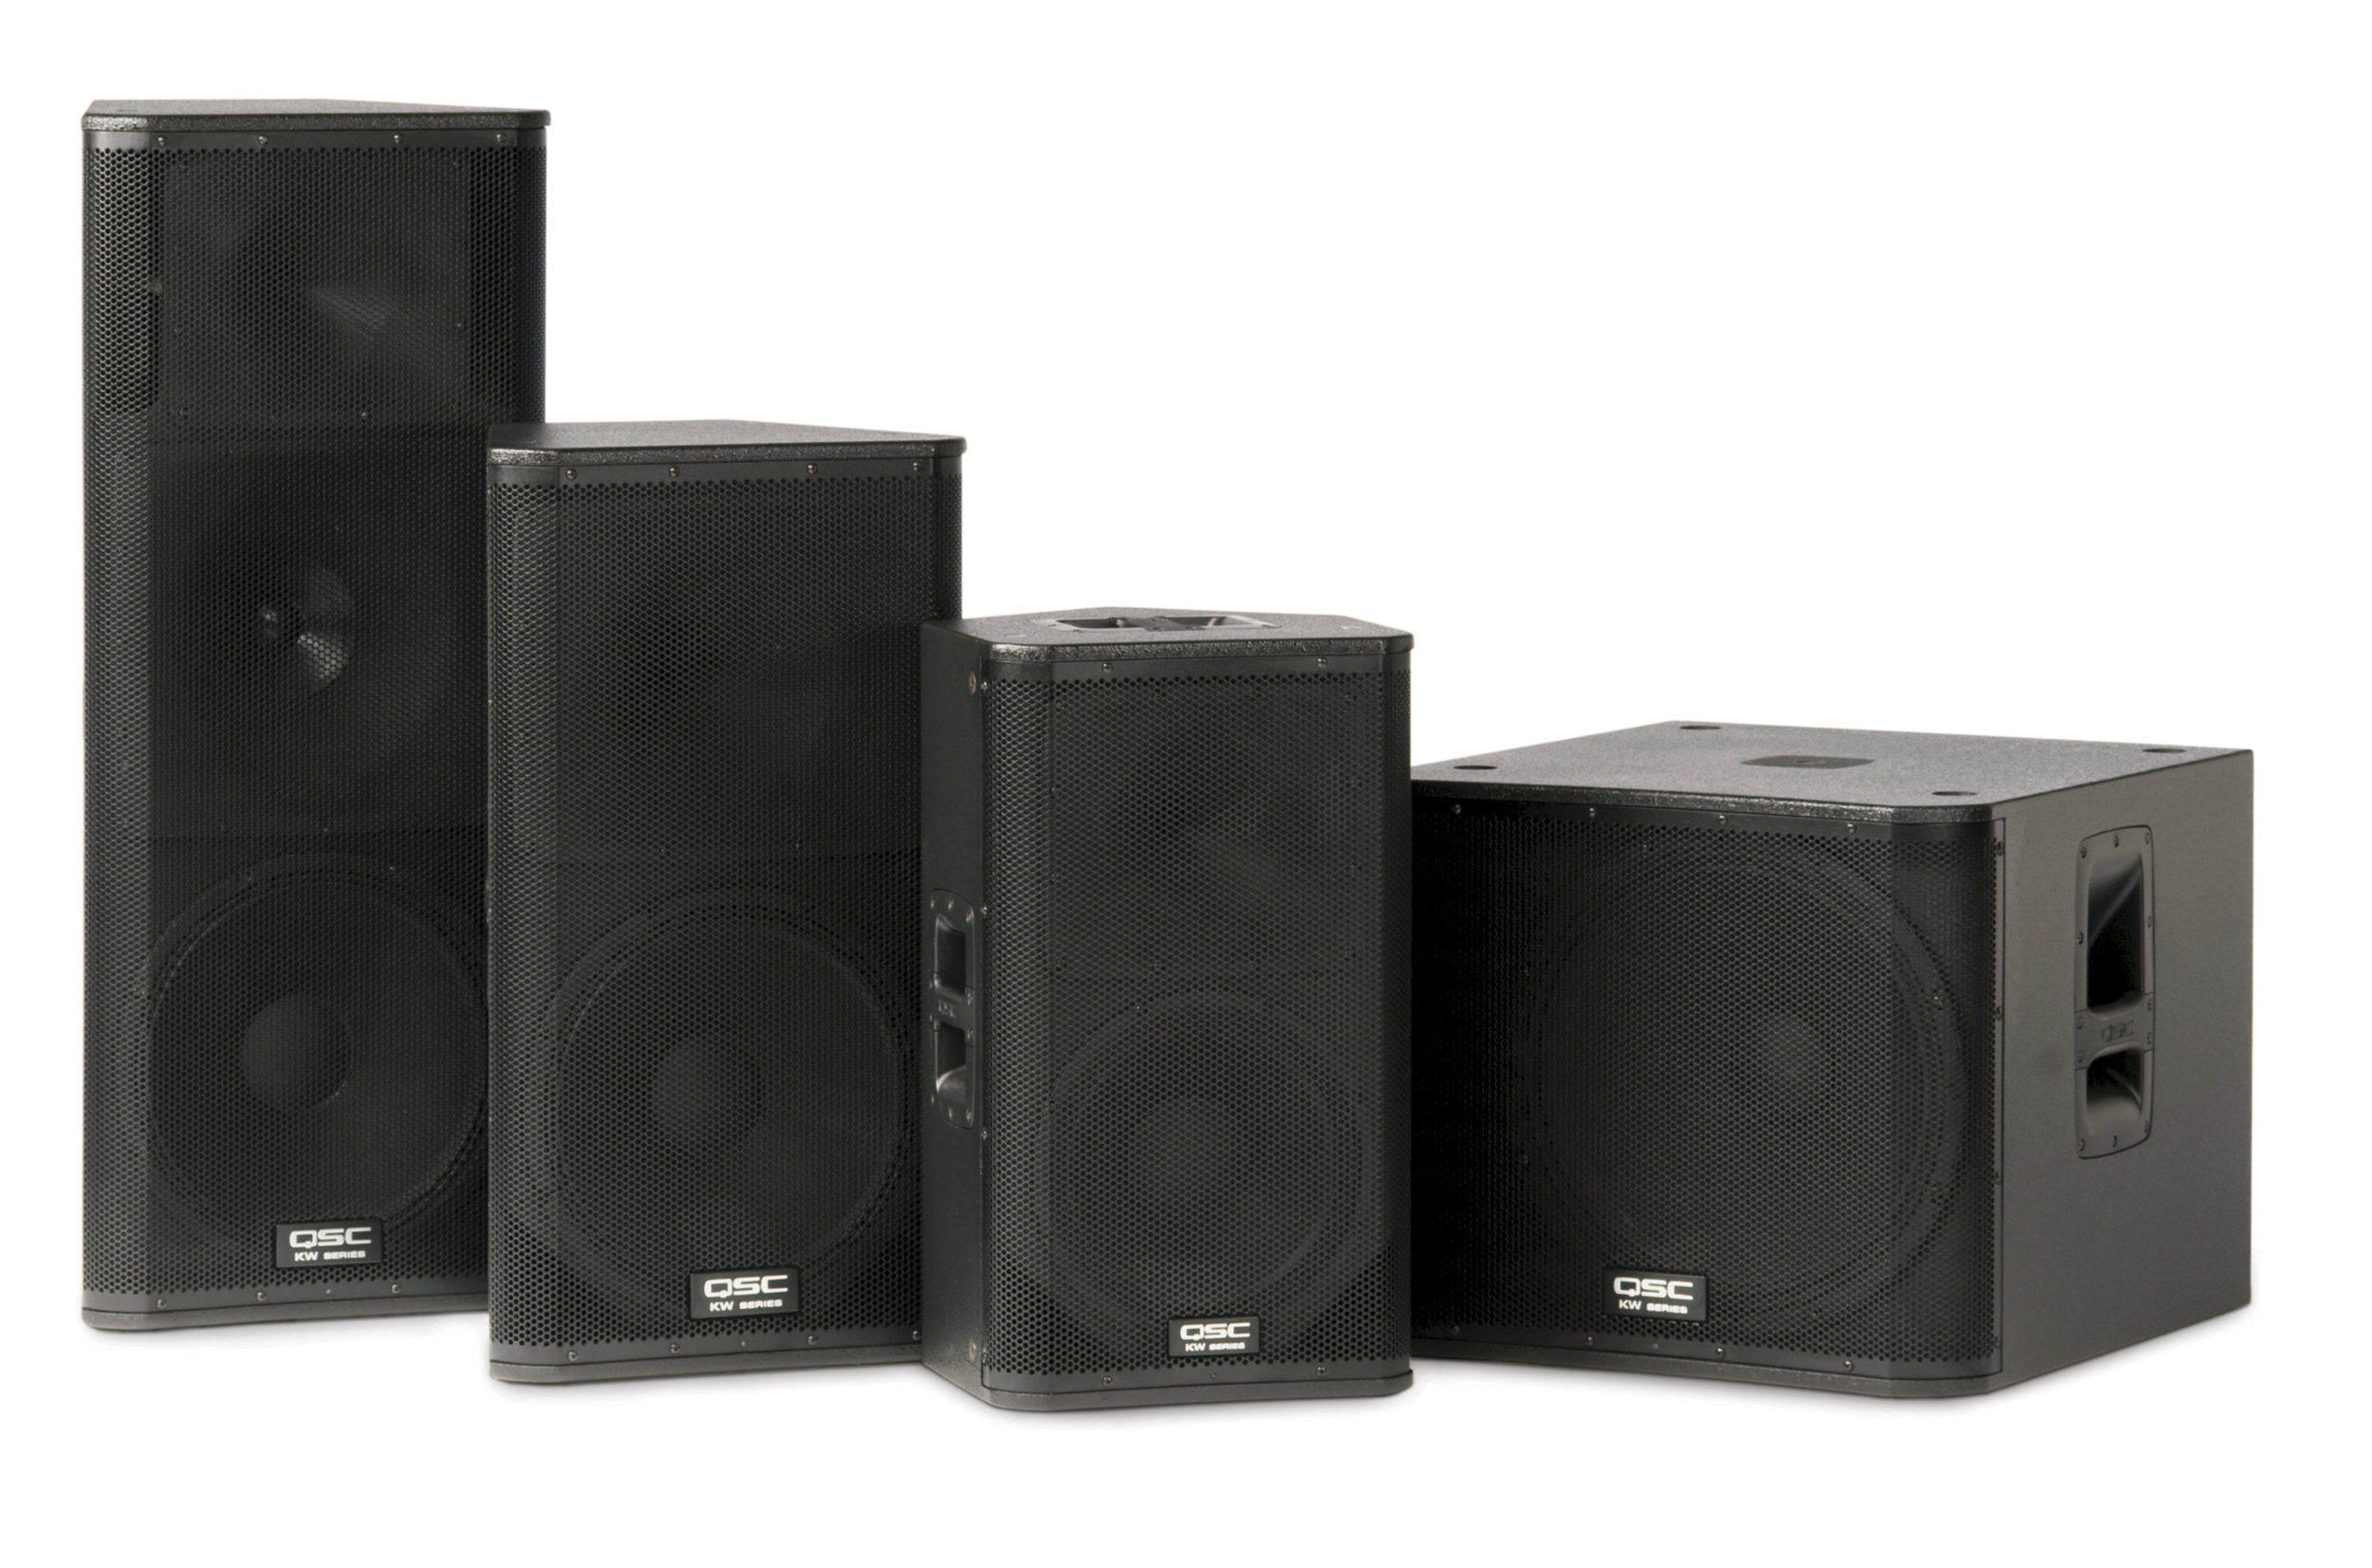 SOUND SYSTEM  We provide a professional sound system and equipment for the band's performance. We include state of the art wireless microphones used for toasts, speeches or any announcements for the event. We include all the microphones and cabling needed for the band's performance.